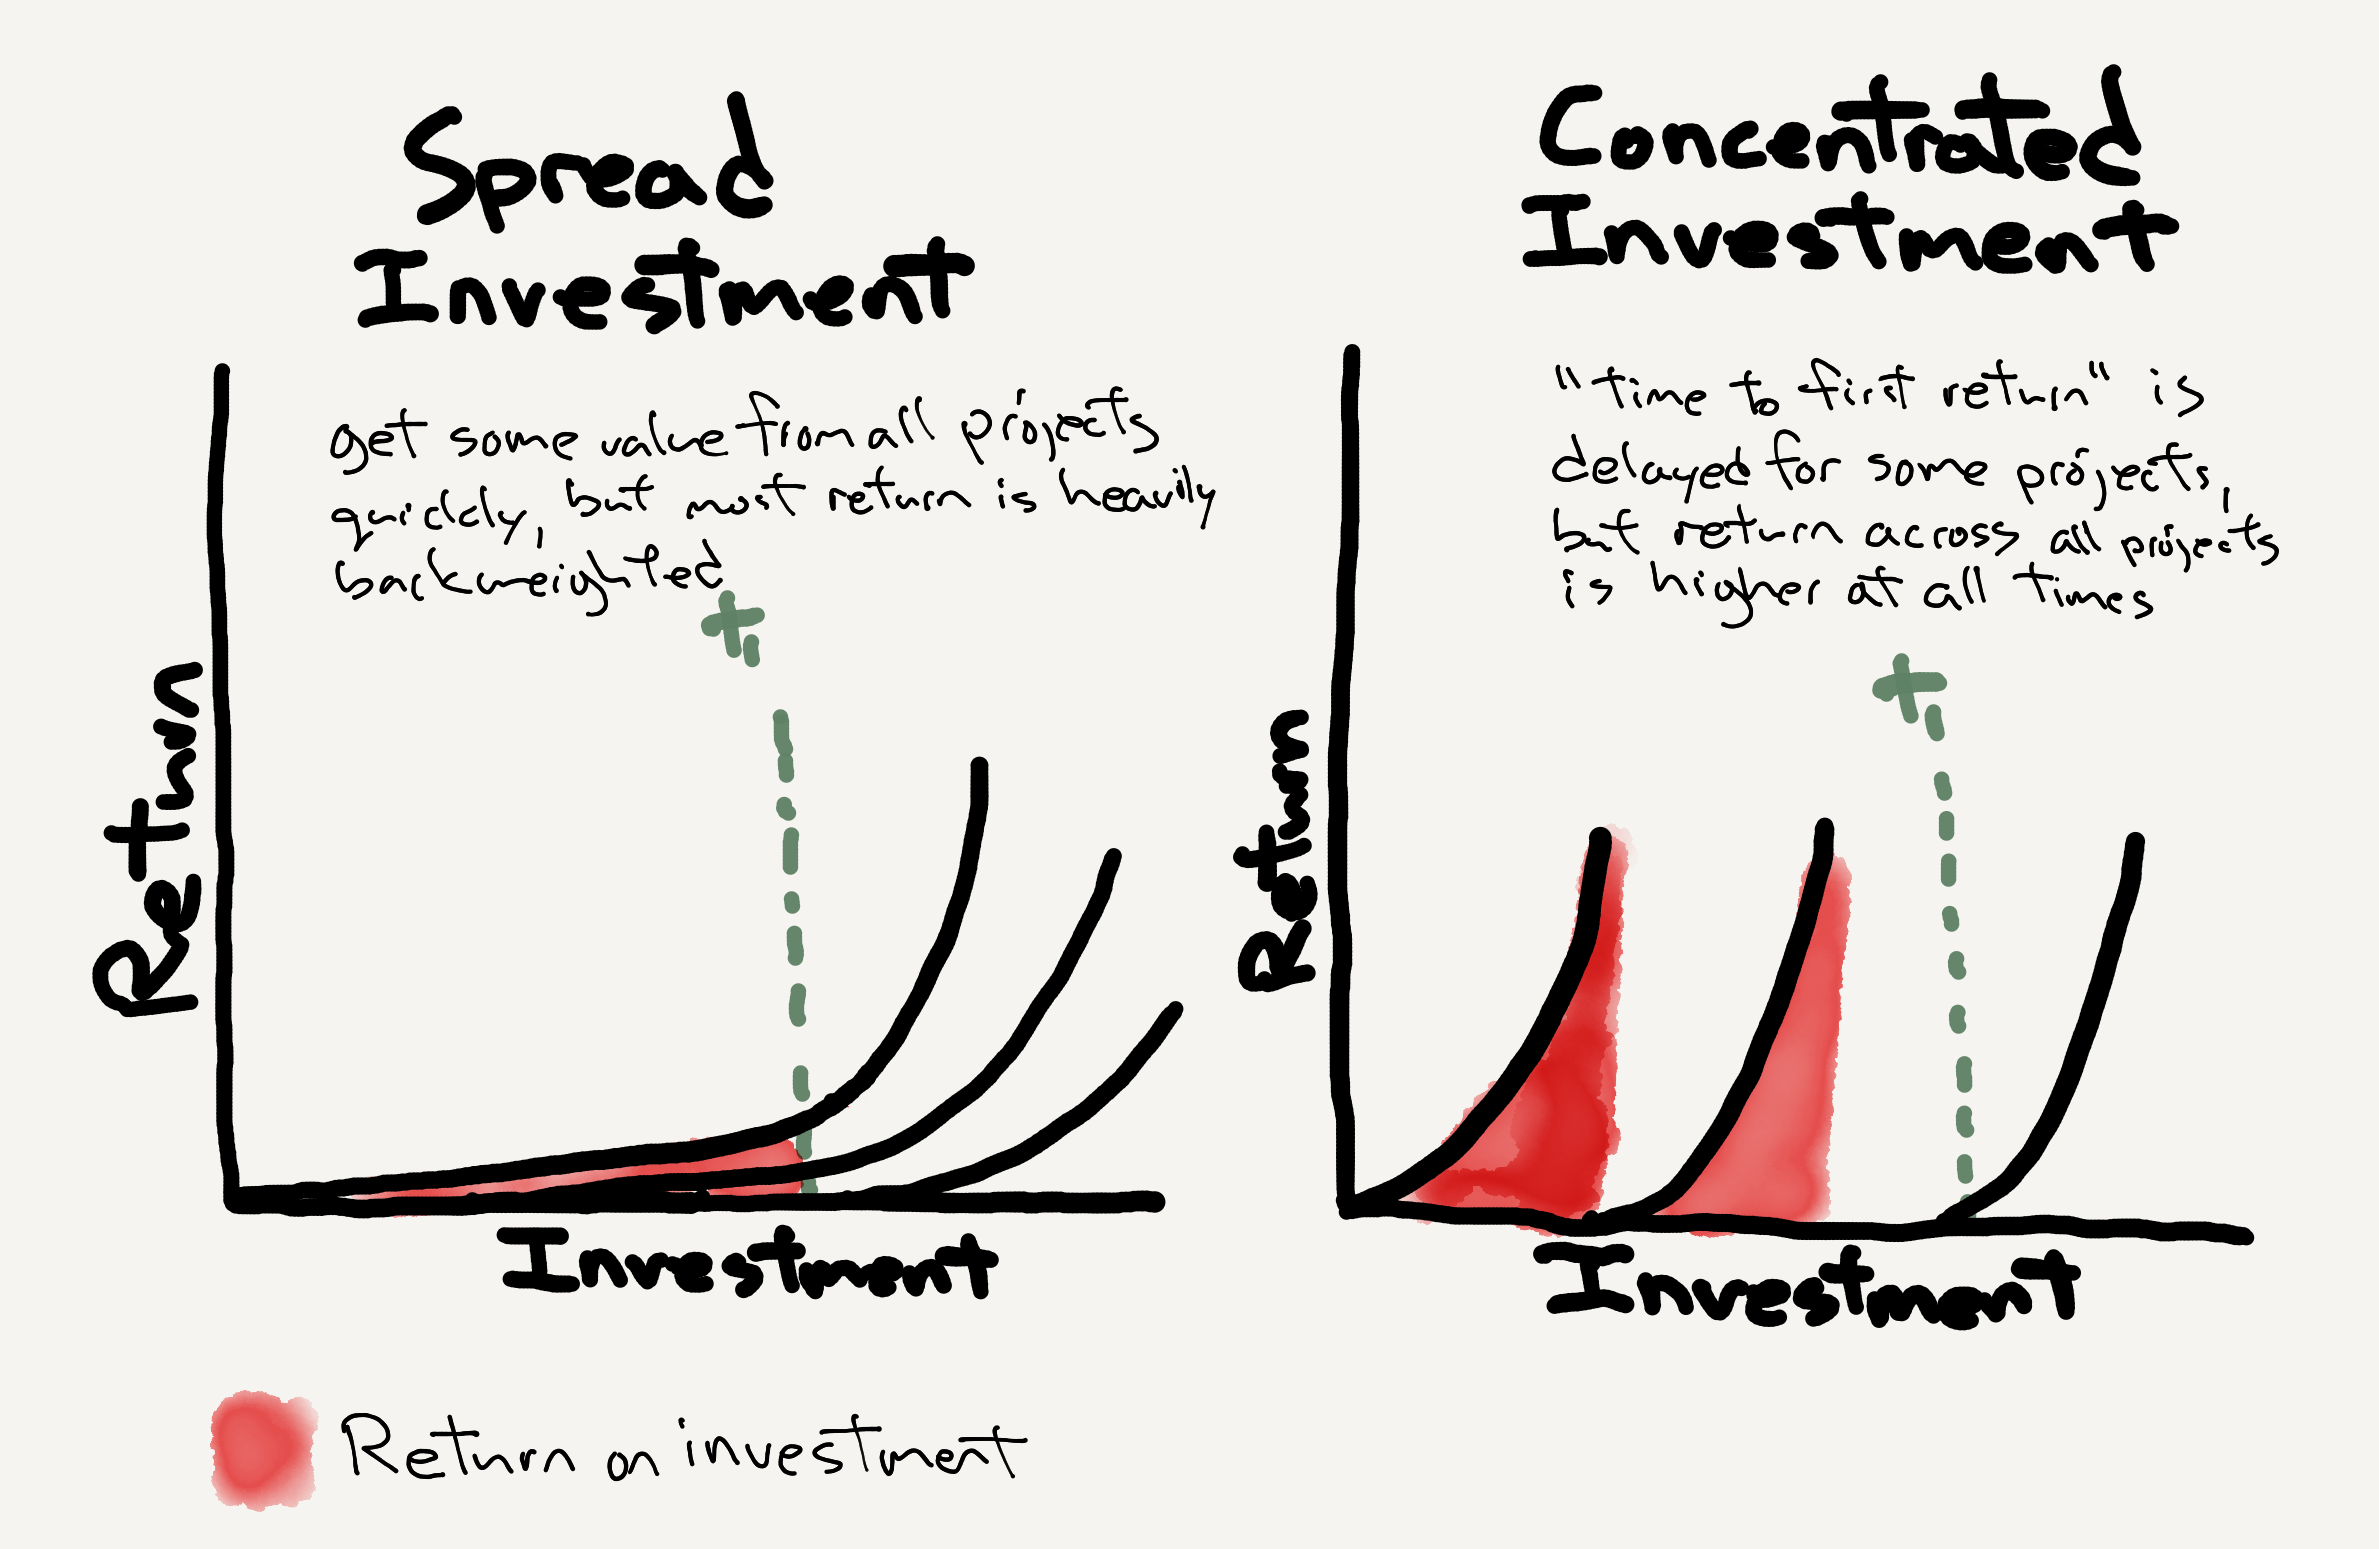 Two graphs showing that consolidating efforts delivers more results across all time frames than spreading them thing.